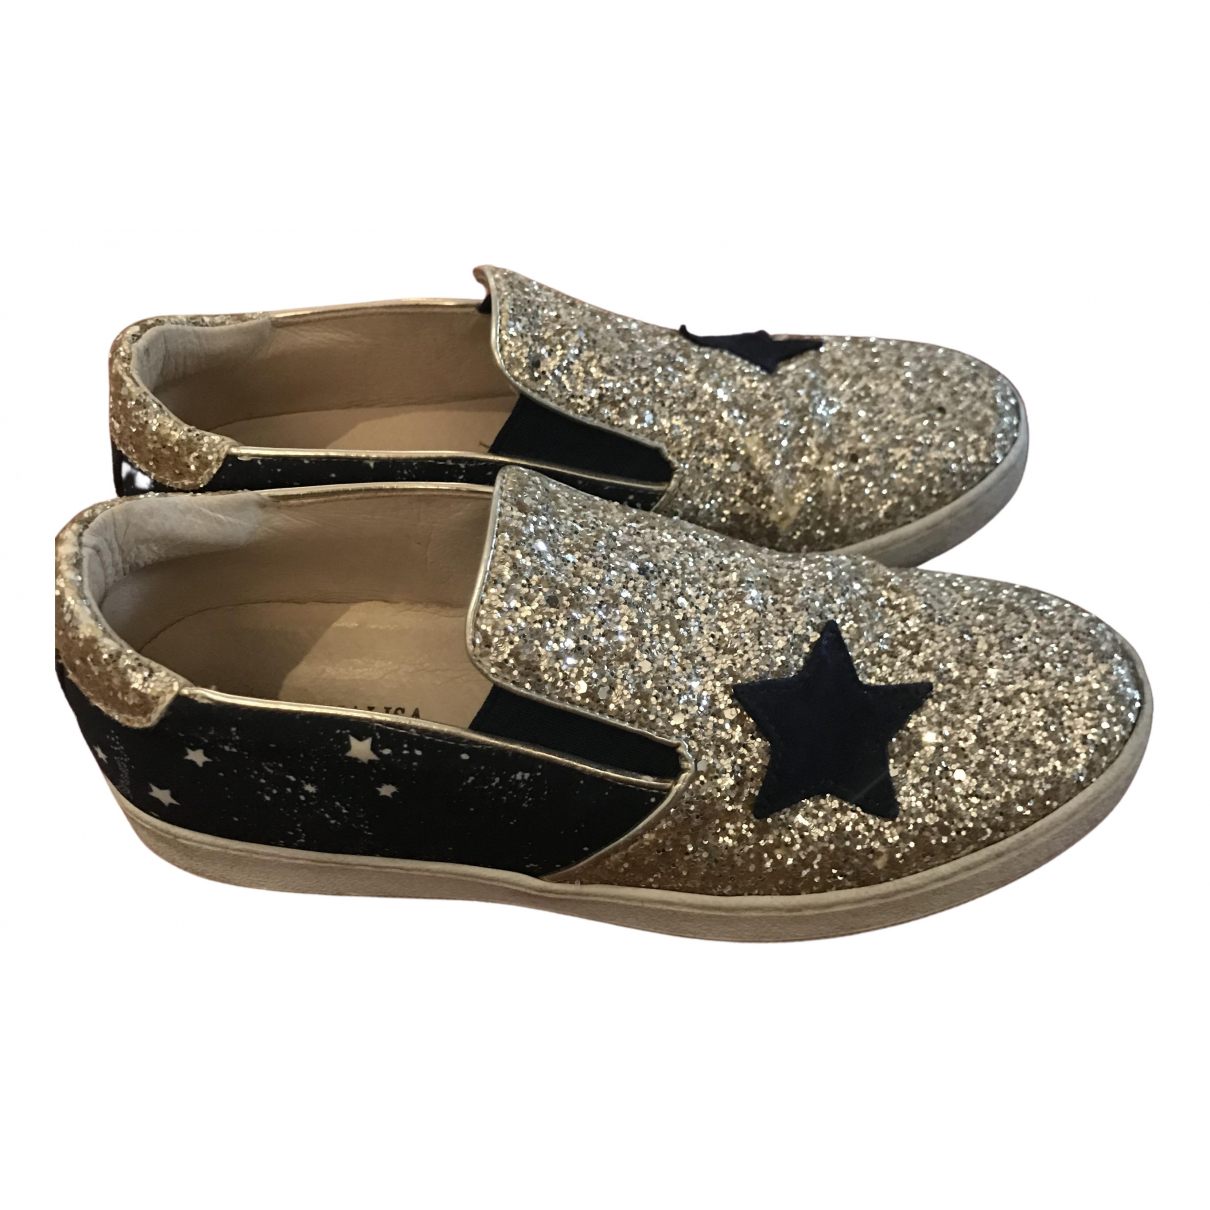 Monnalisa N Gold Glitter First shoes for Kids 37 FR